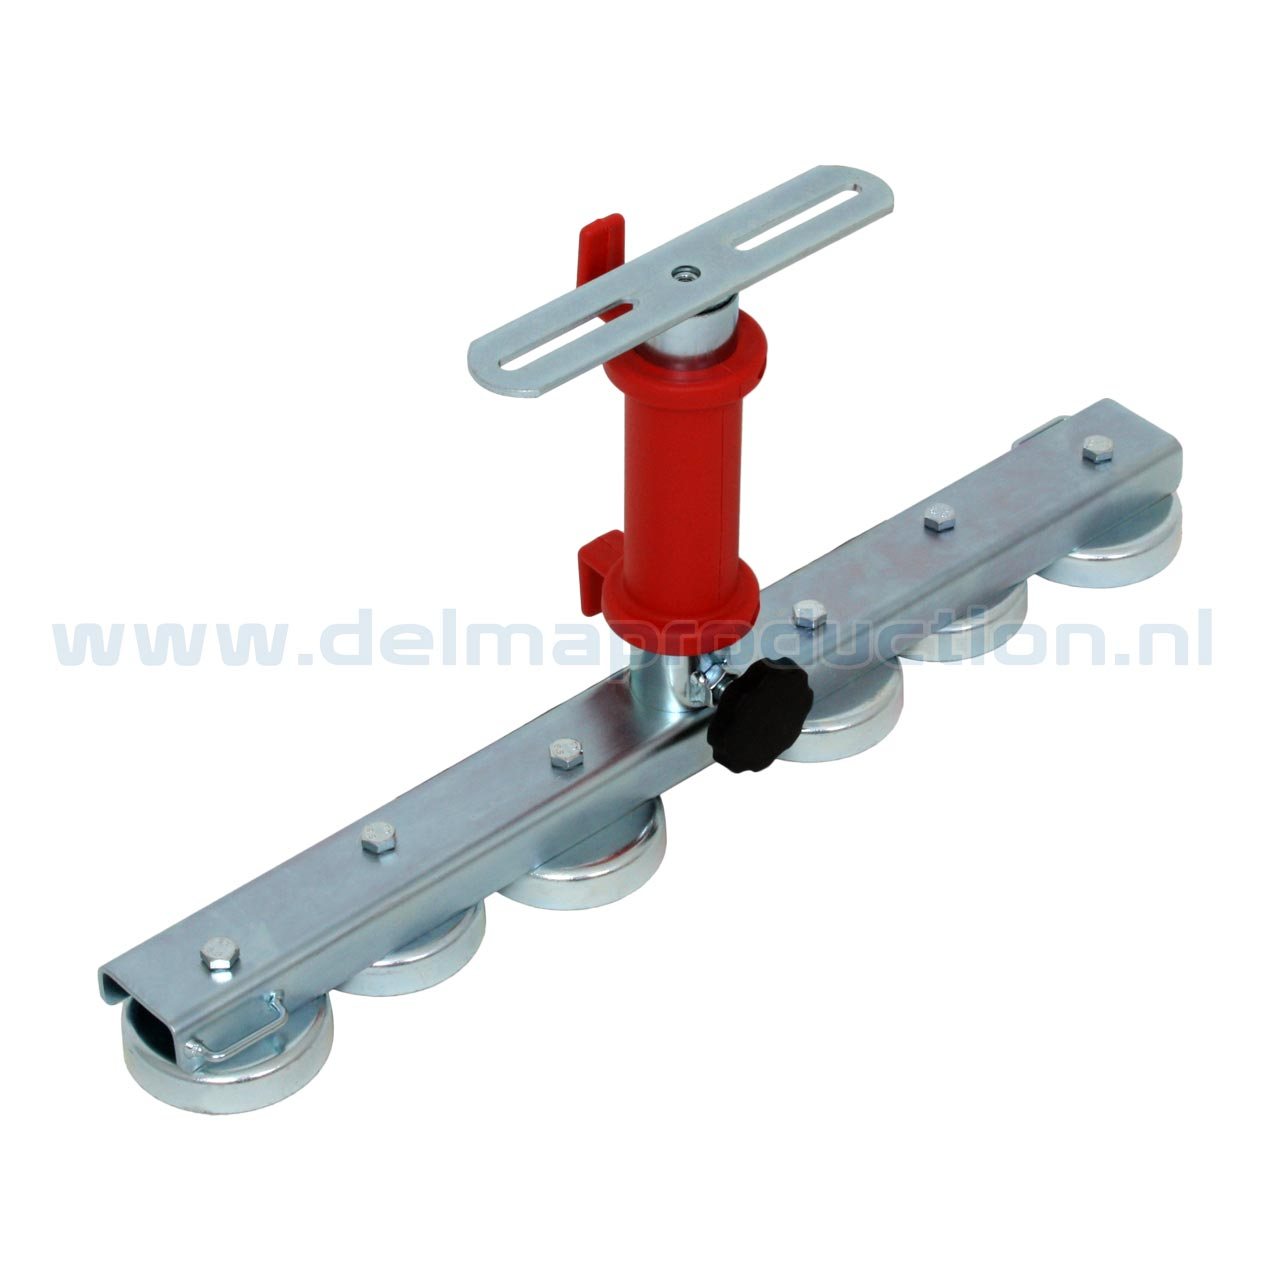 Magnet Work Light Stand with 6 magnets  (1)